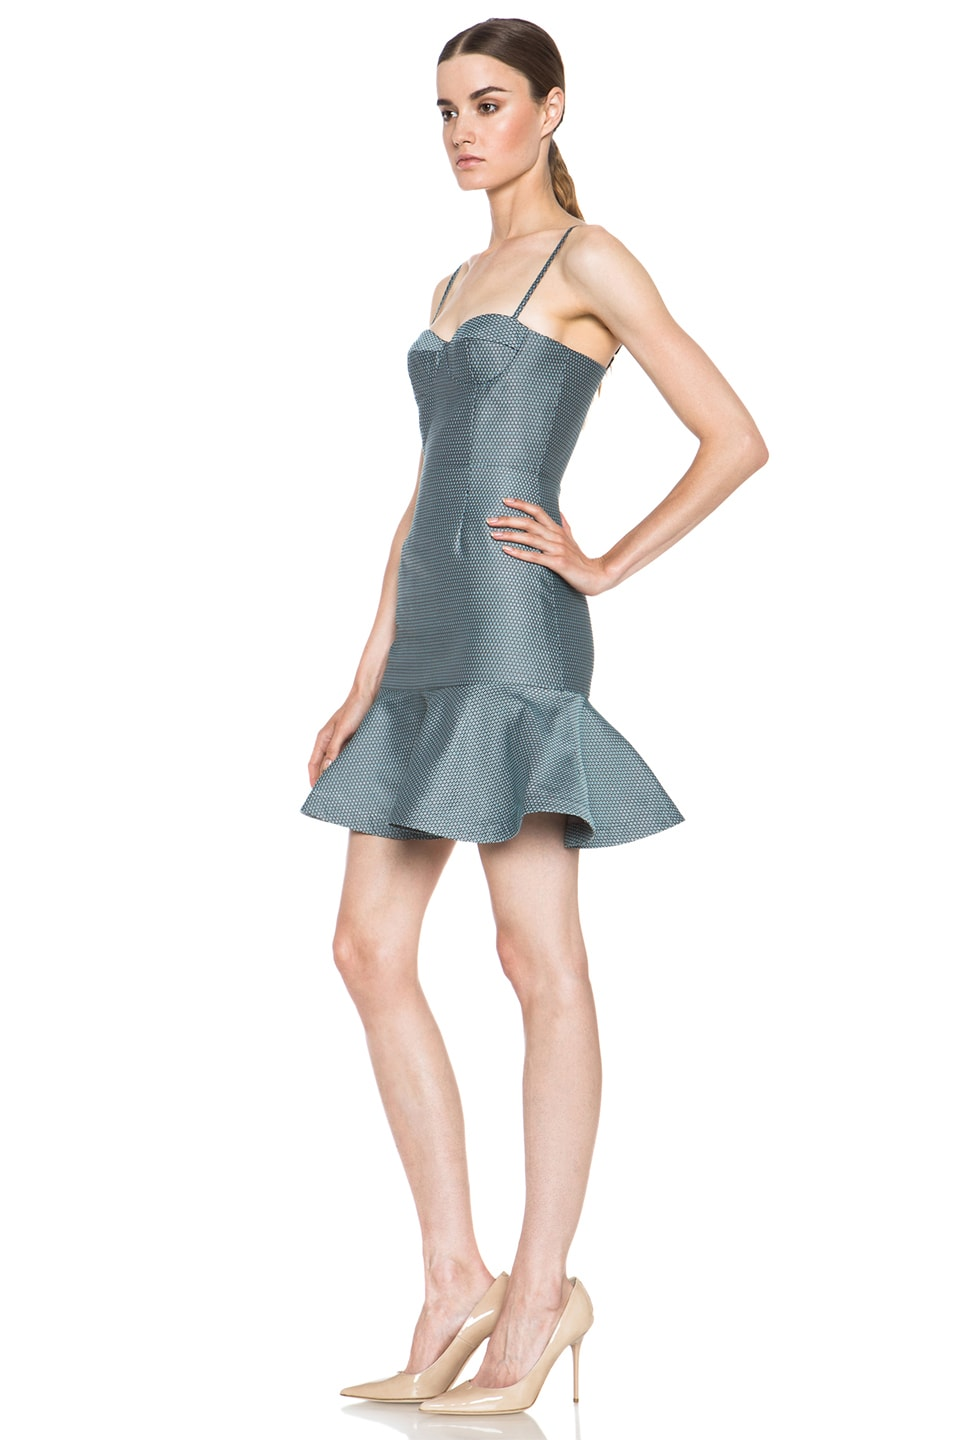 Image 2 of Opening Ceremony Calcite Poly-Blend Dress in Pool Blue